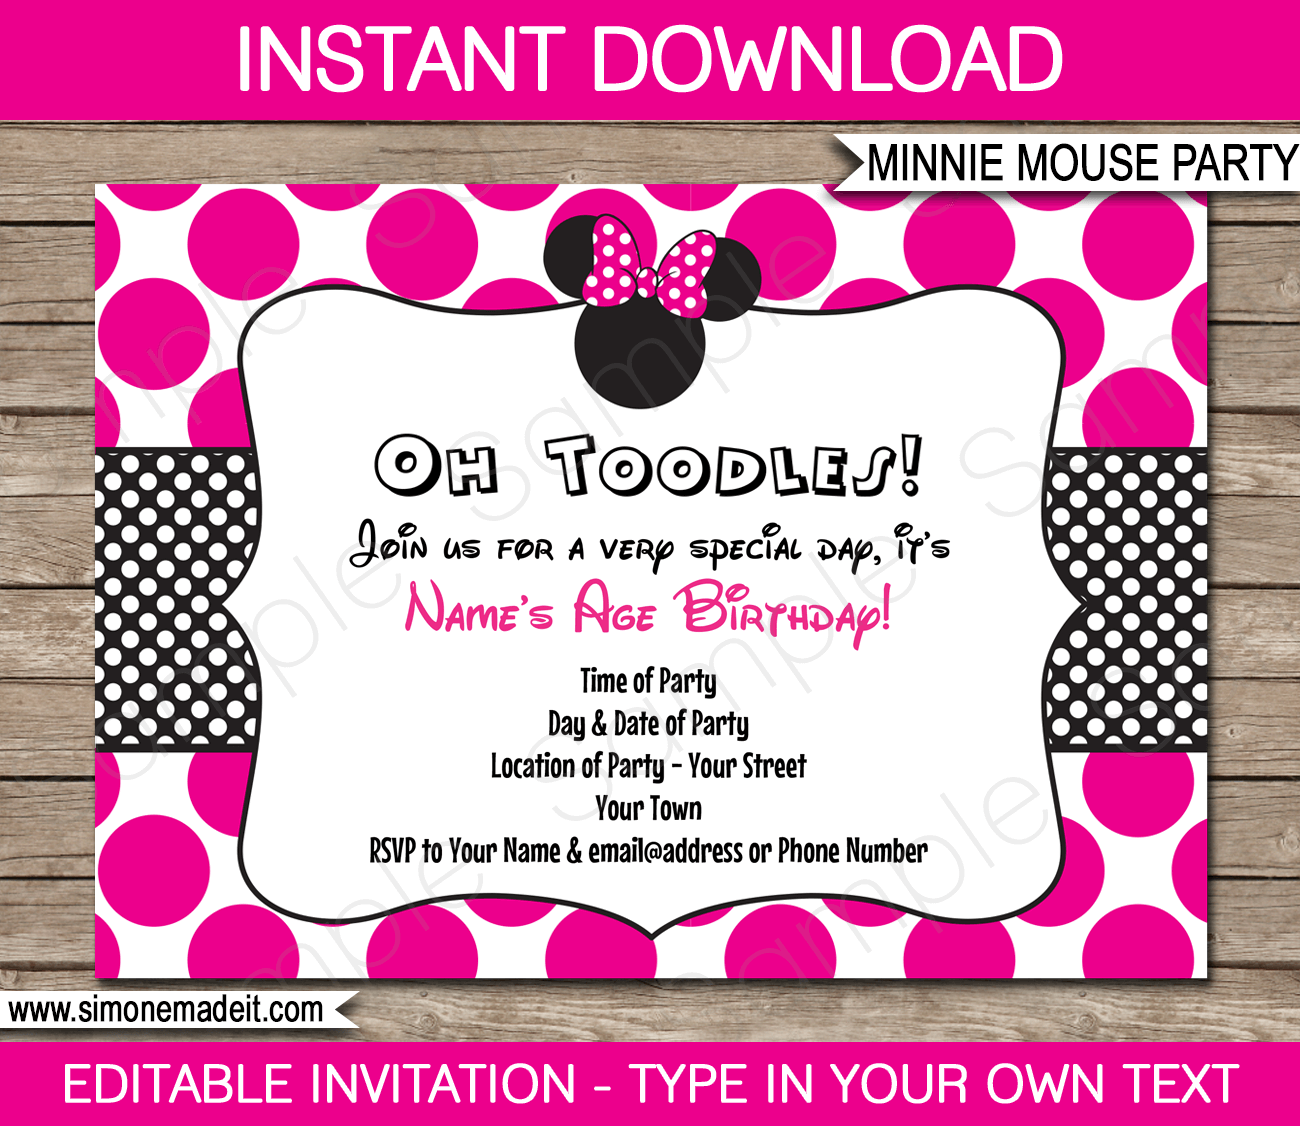 Minnie Mouse Party Invitations Template Birthday Party - Party invitation template: free science birthday party invitation templates